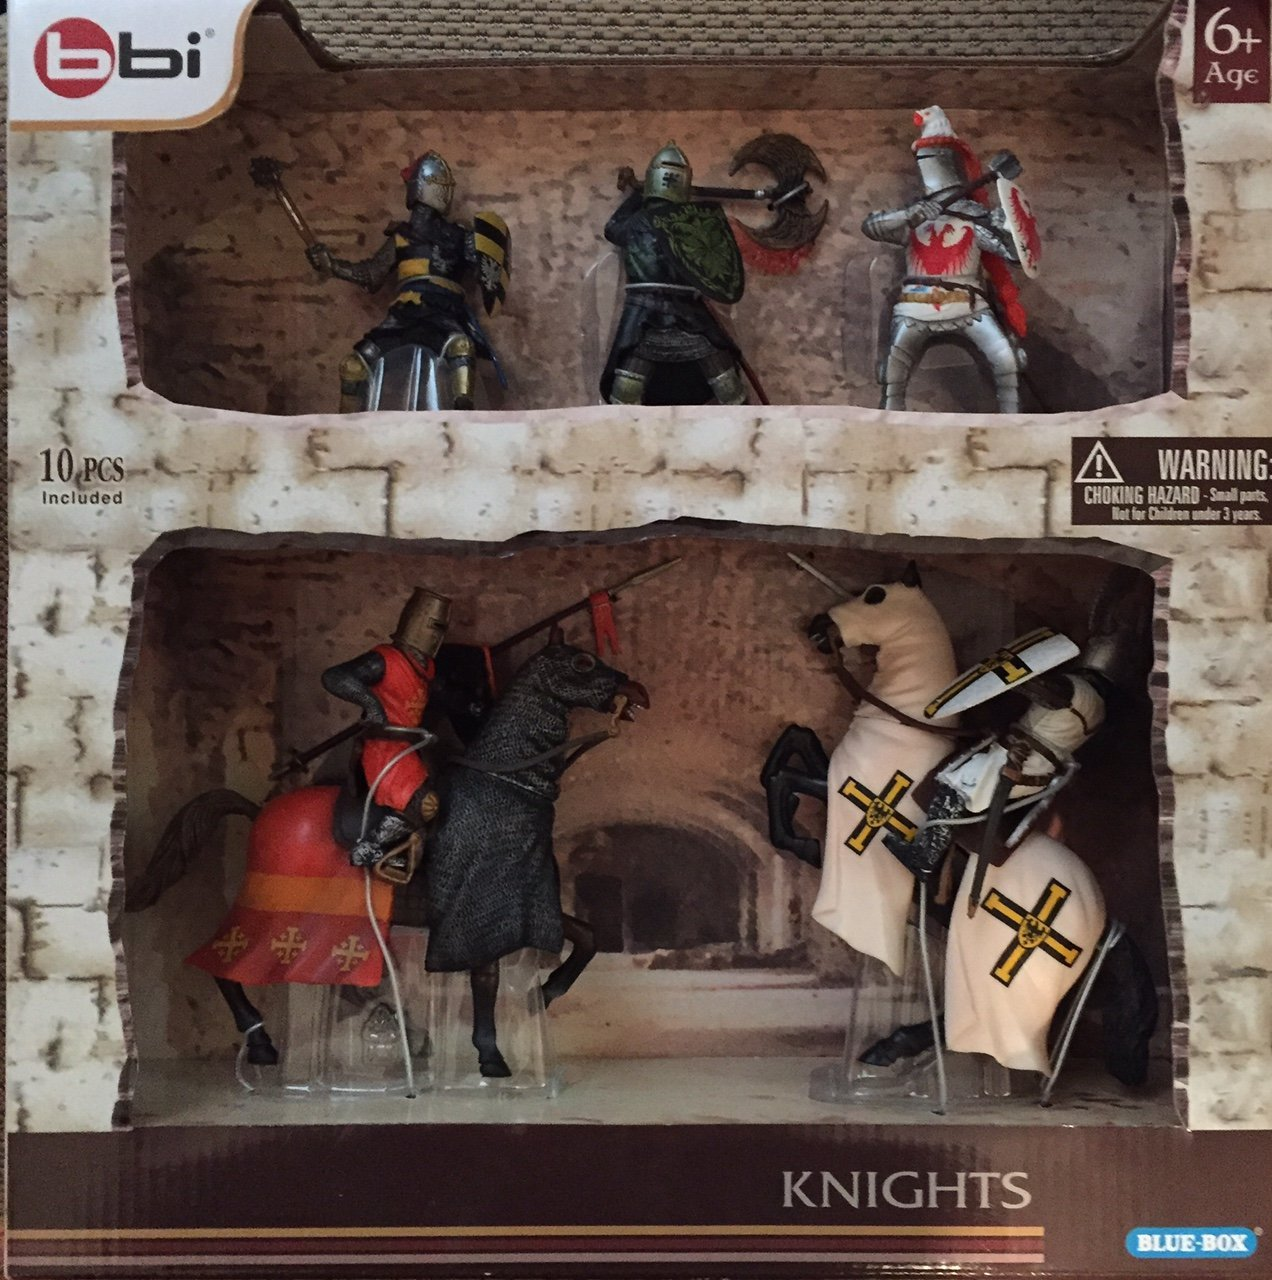 bbi Blue Box Knights Action Figures with Horses Approx 4 tall Standing 6 tall Mounted